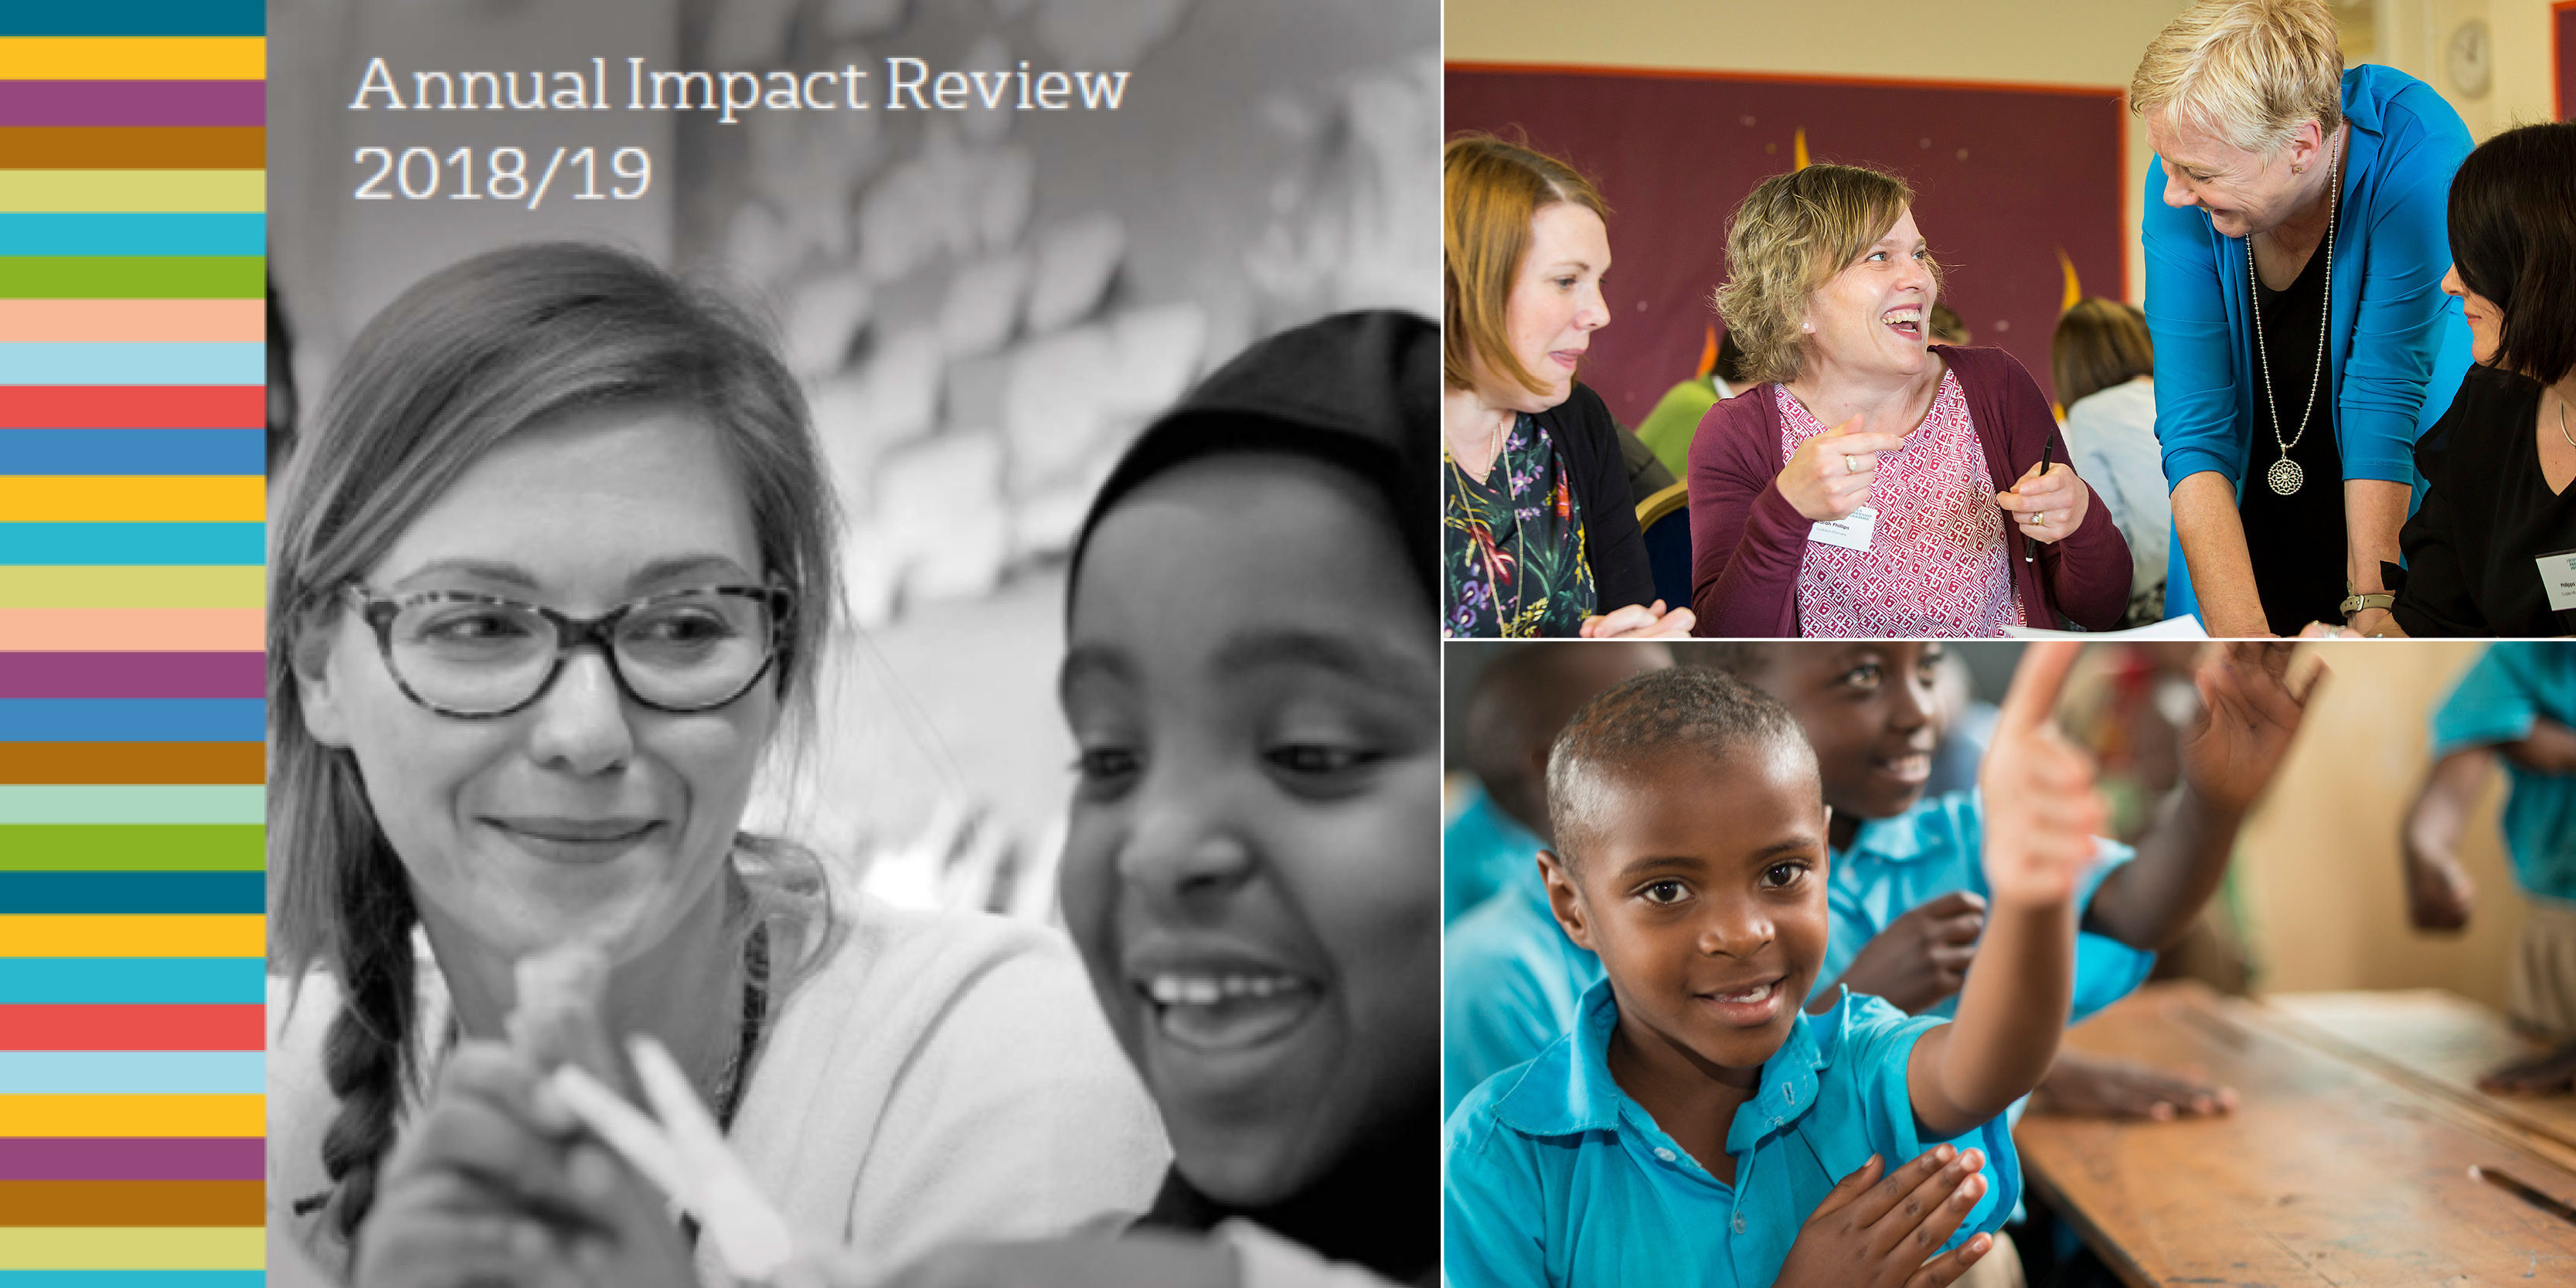 Annual-impact-review_carousel-image_1